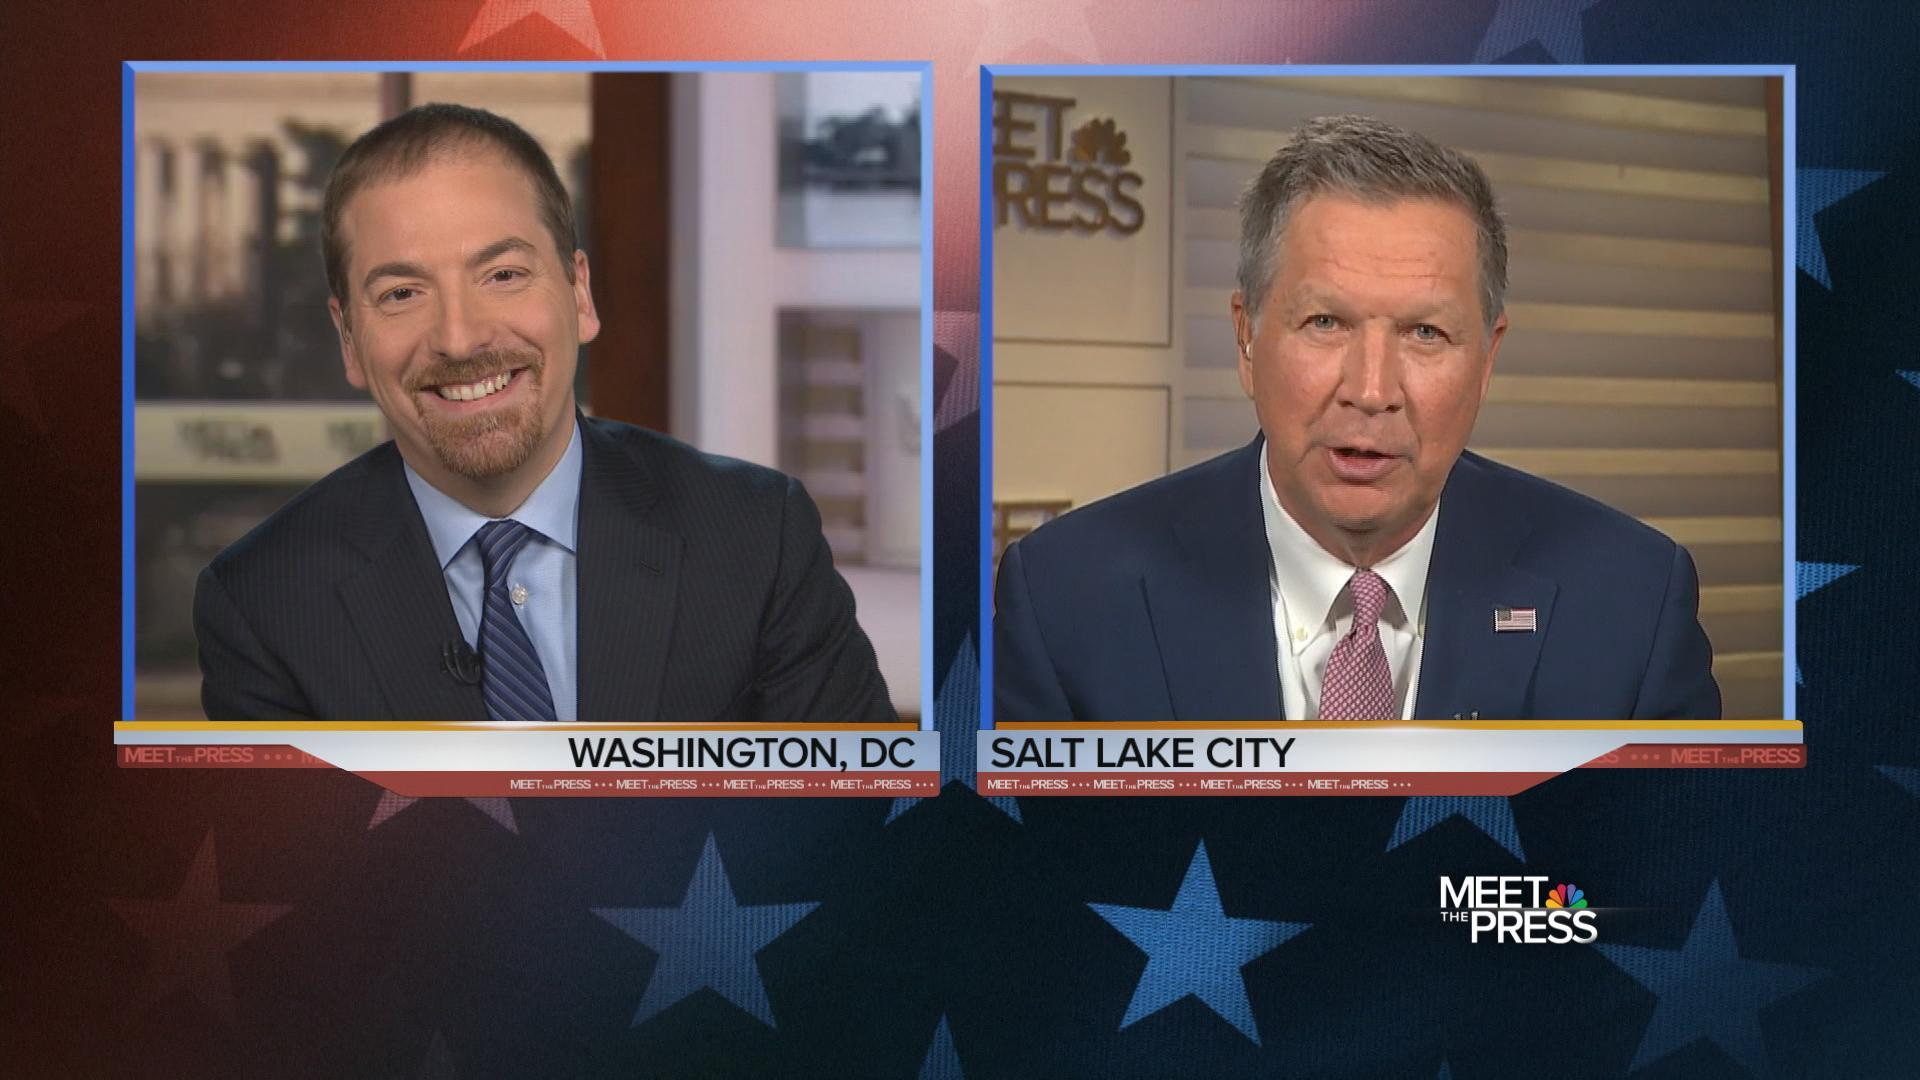 Kasich: 'Under No Circumstances' Will I Be Vice President